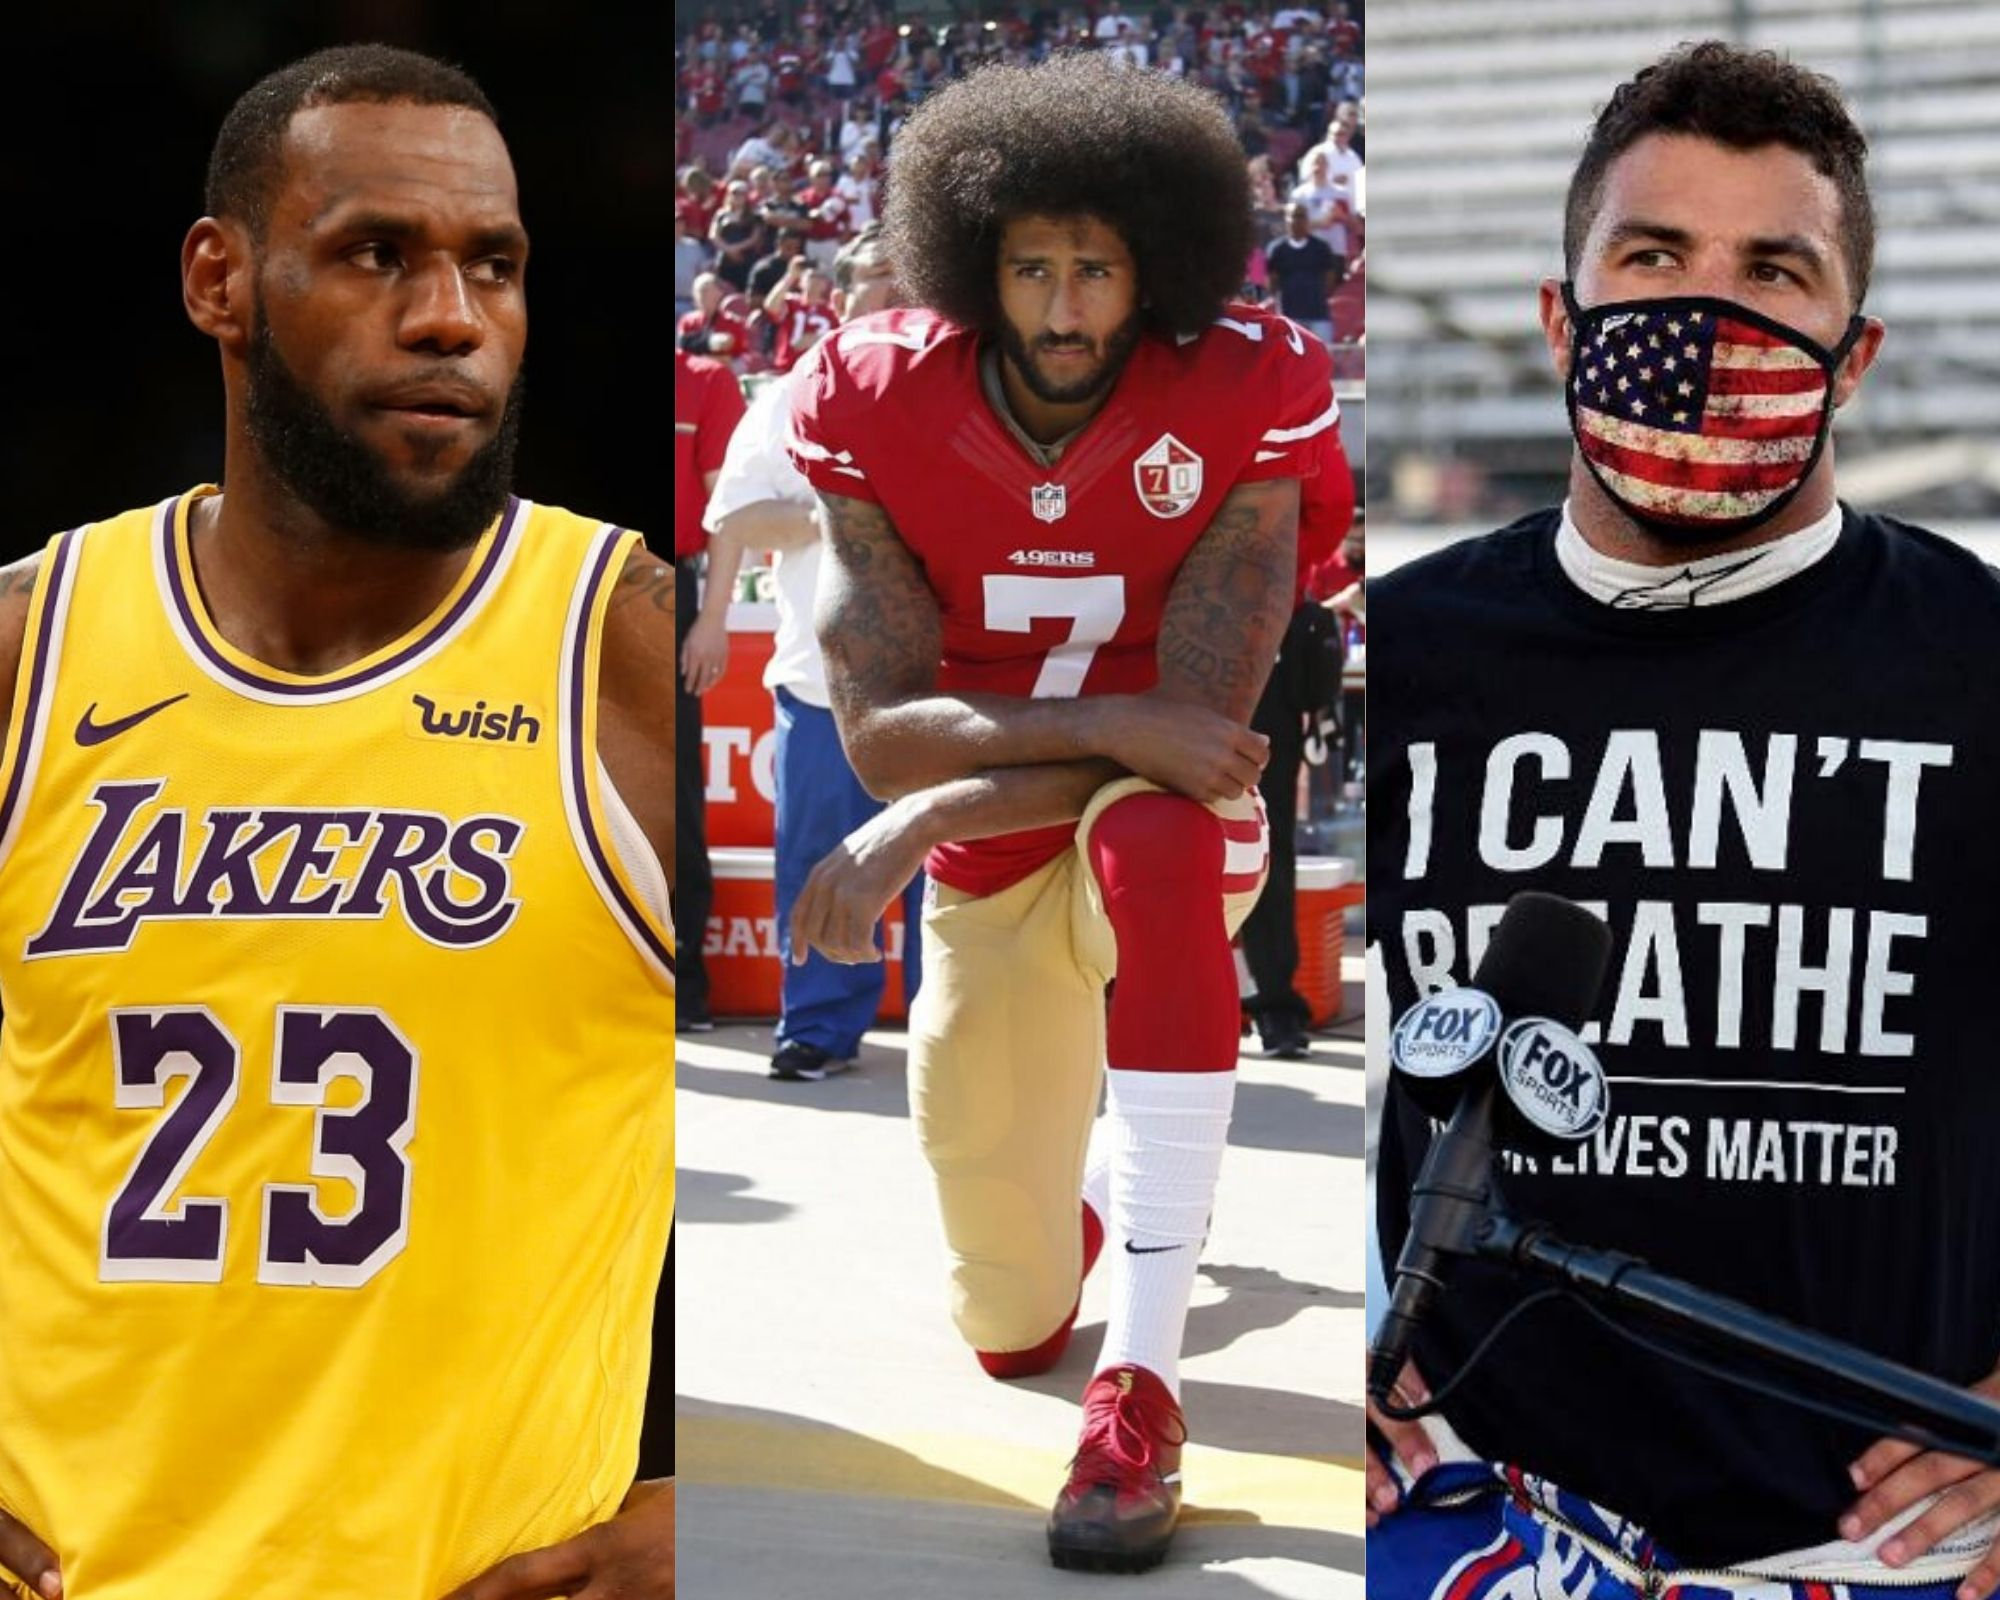 Sports and Social Justice